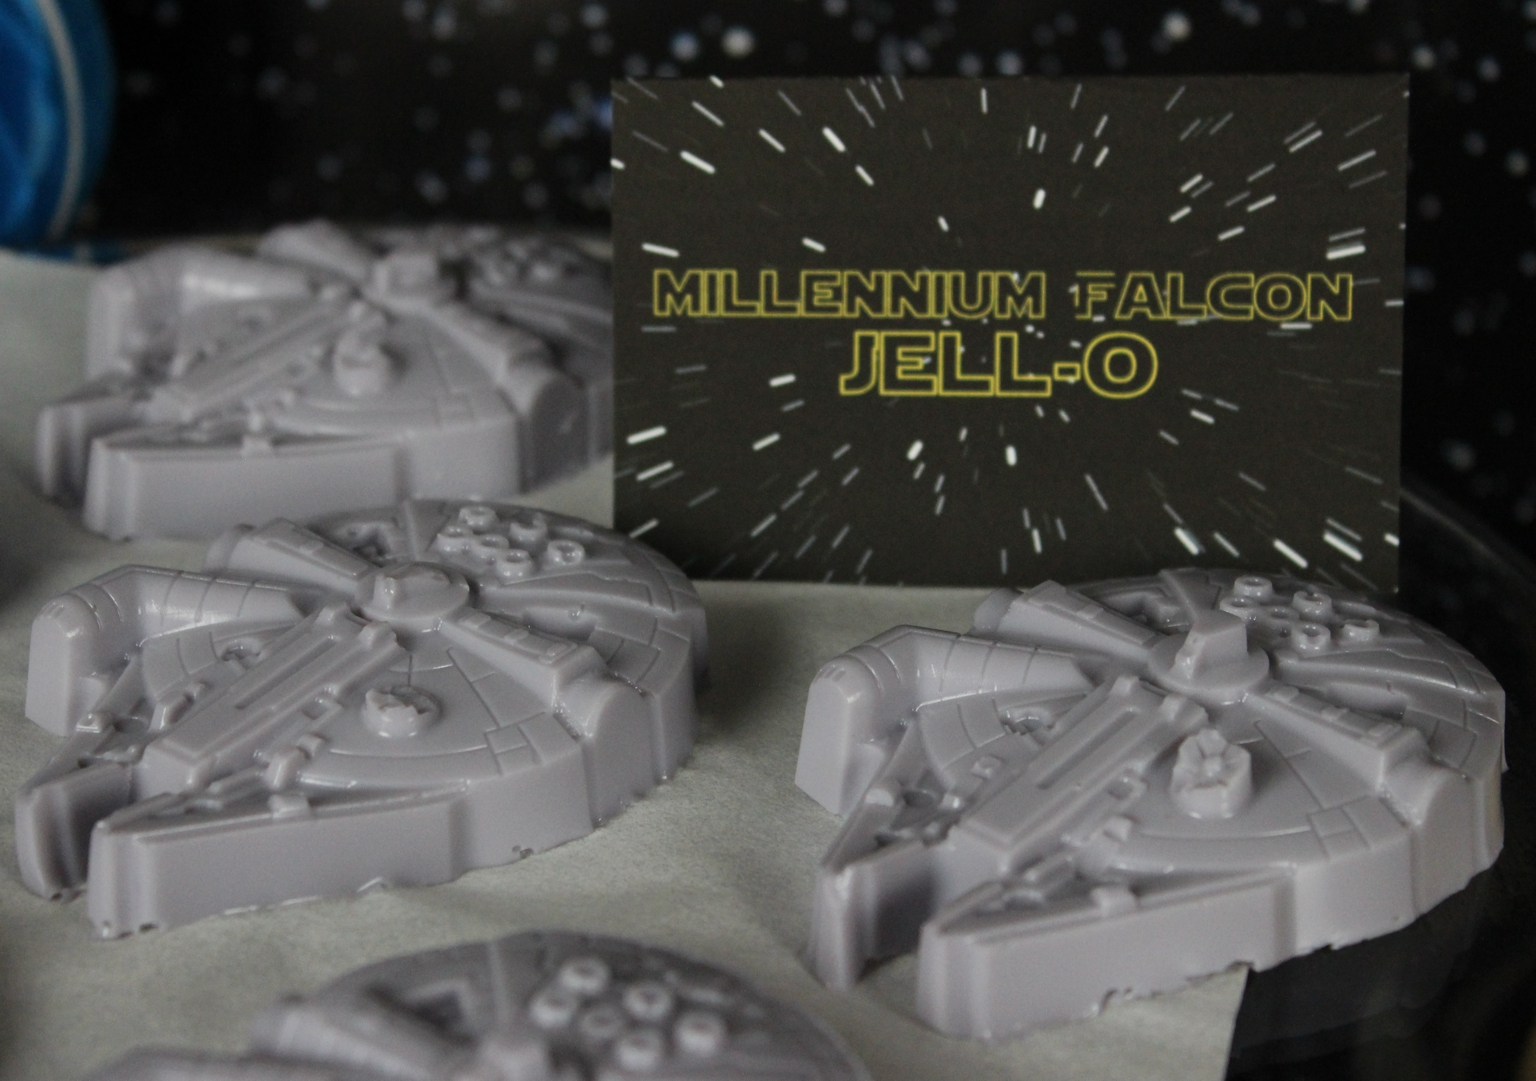 TFA Party - Millennium Falcon Jello